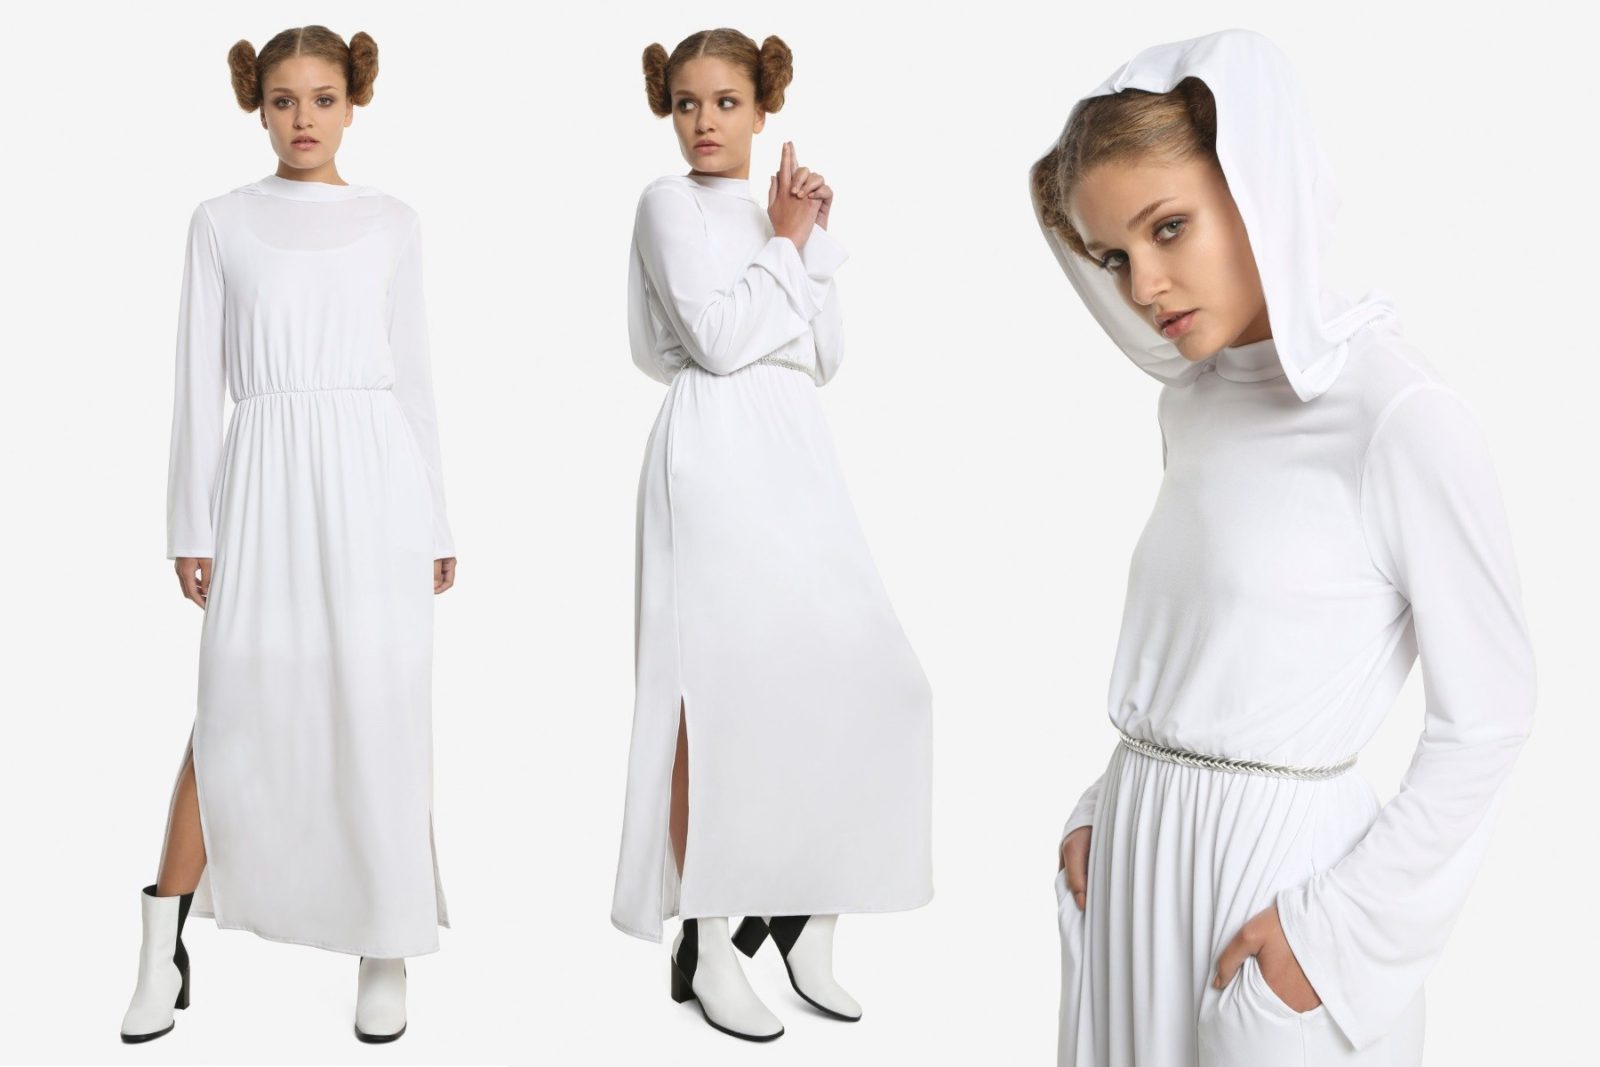 Her Universe Princess Leia Cosplay Dress